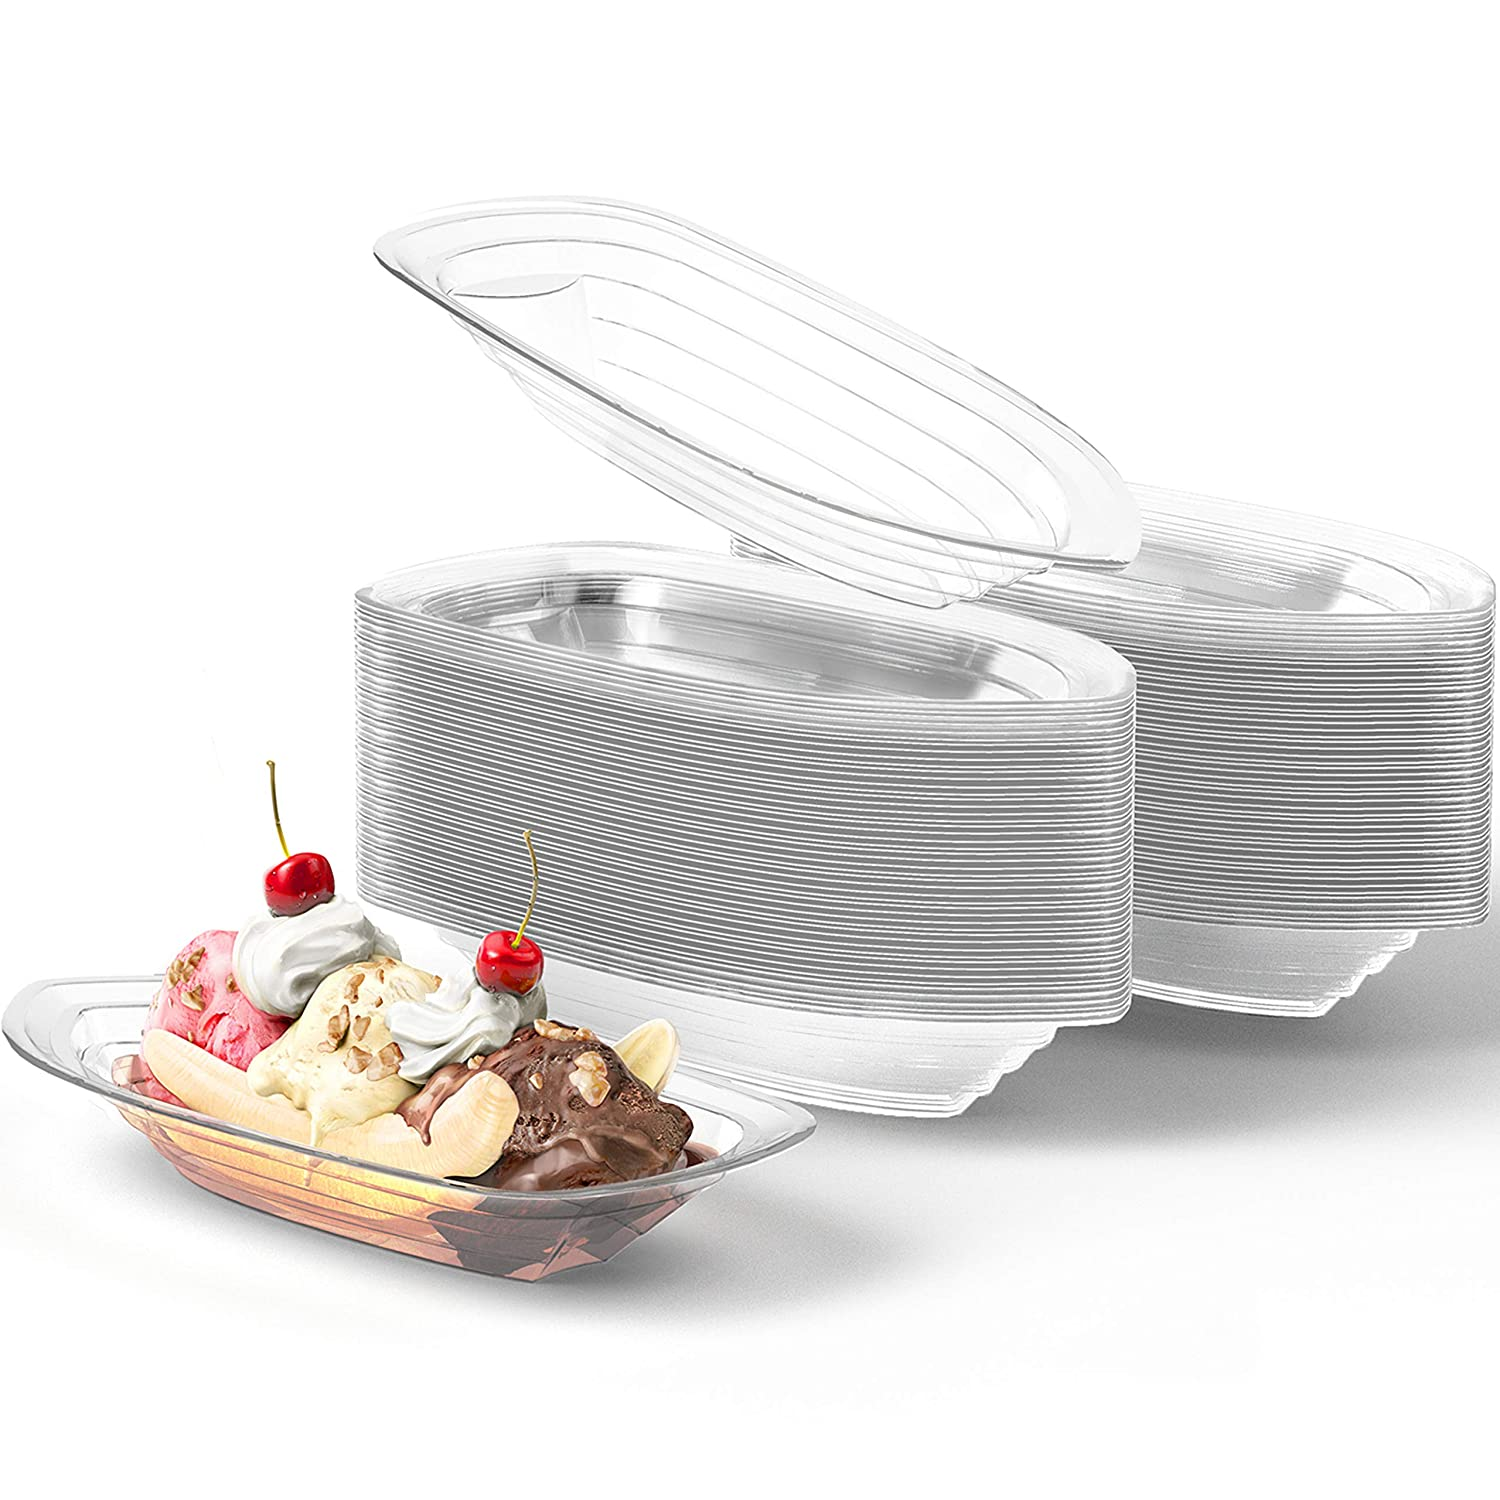 Super Fun, Recyclable Banana Split Boats 100 Pack. Best Long, 12 Oz Disposable Ice Cream Sundae Bowls. Perfect Plastic Sunday Cups for a Social or Kids Birthday Party. Great Clear Boat for Carnivals